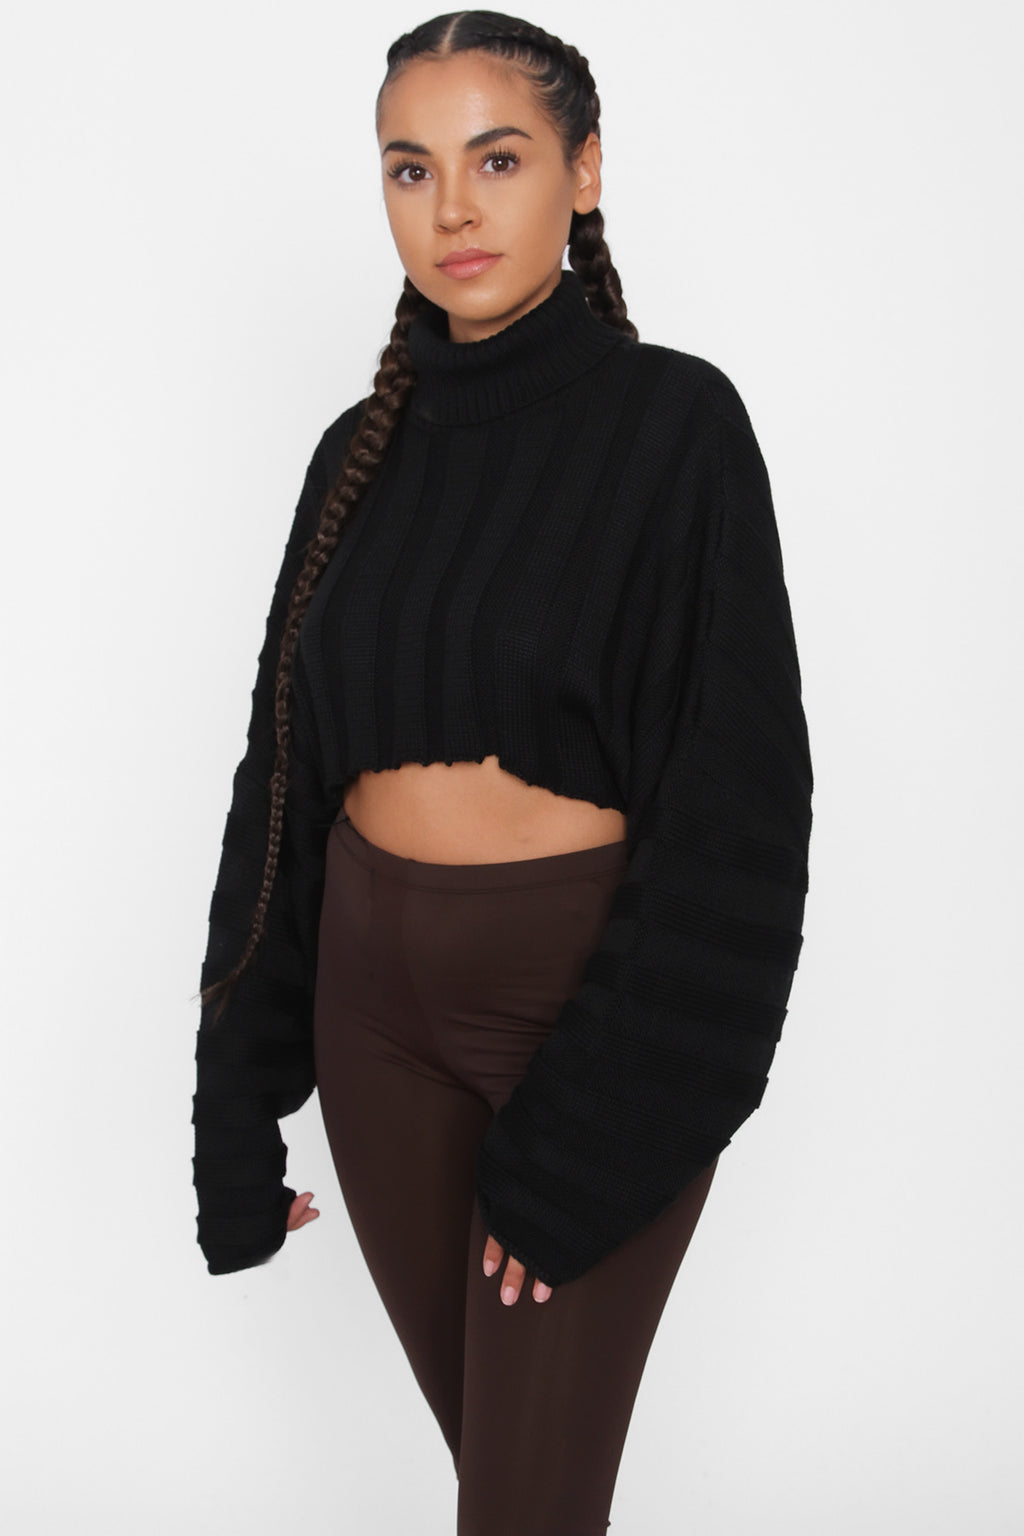 TIC TOC Cropped Sweater Black